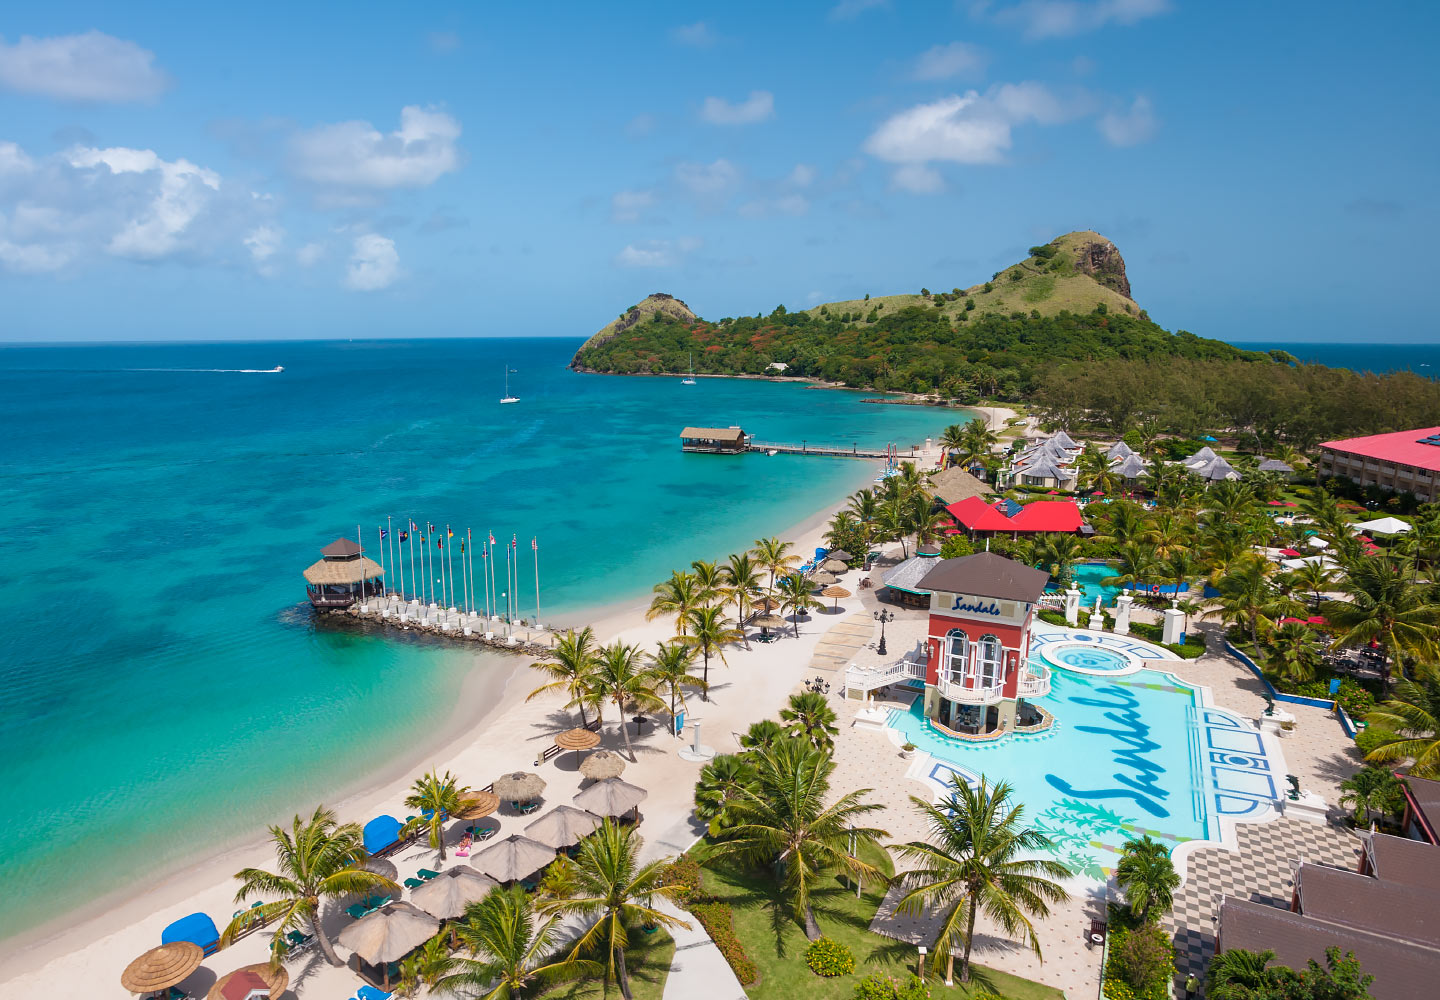 sandals beaches resorts travel by kelly